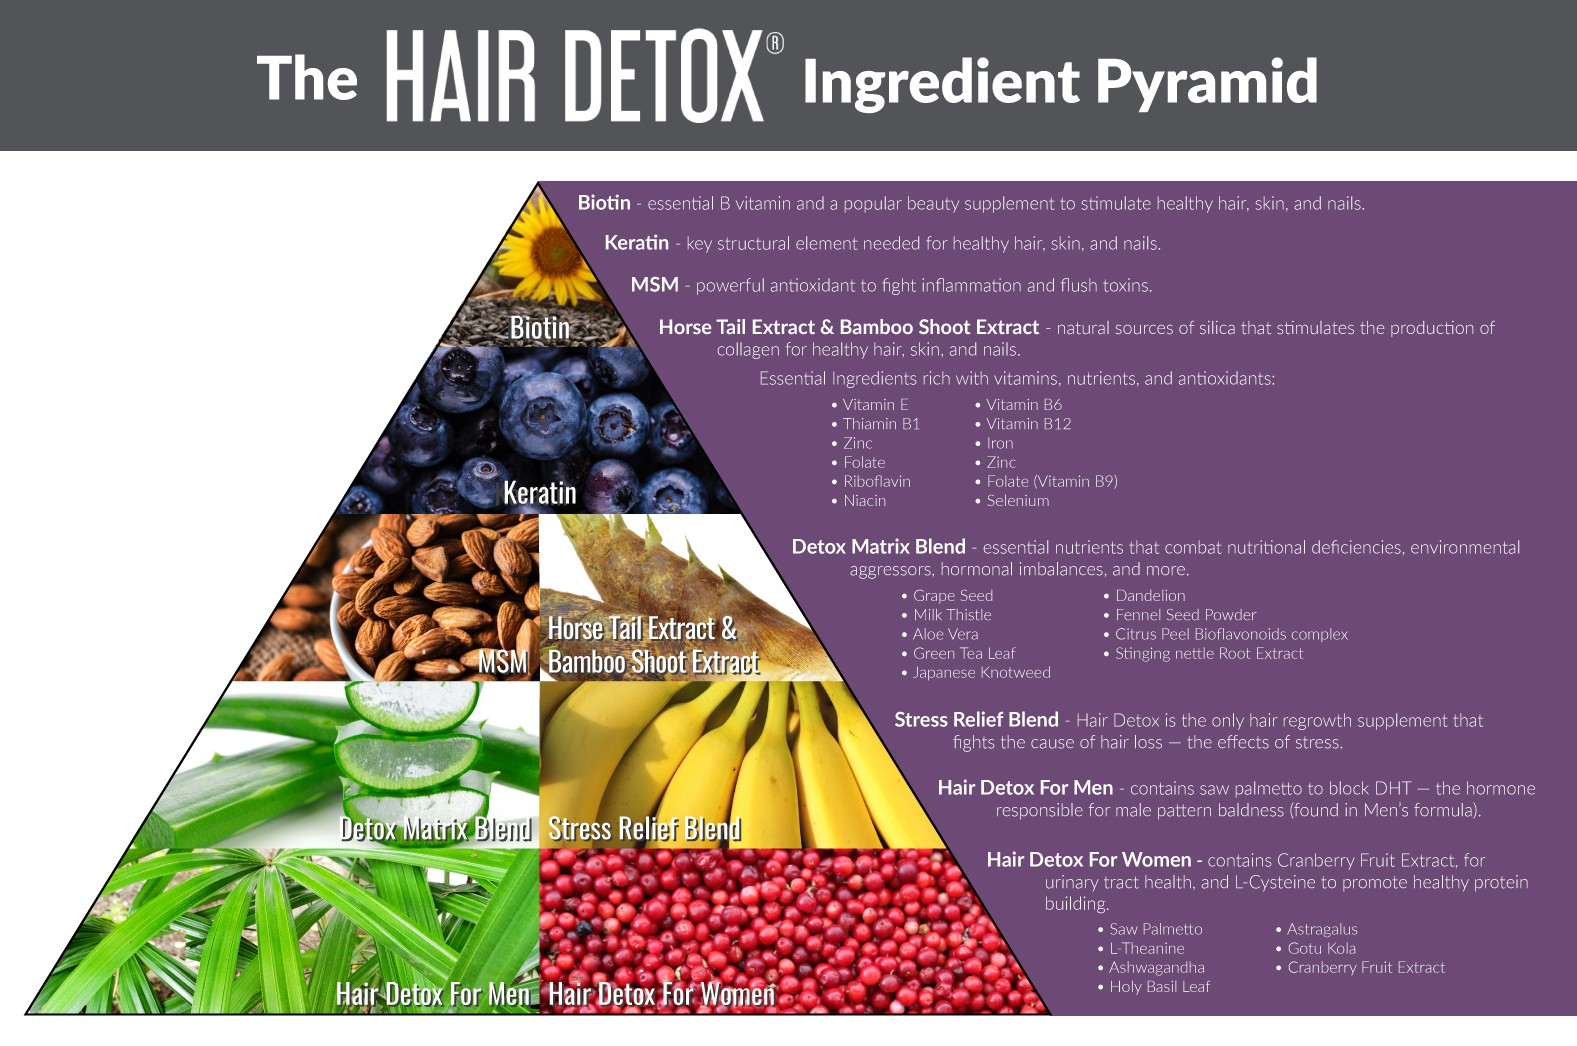 Hair-Detox-Pyramid-rev-1